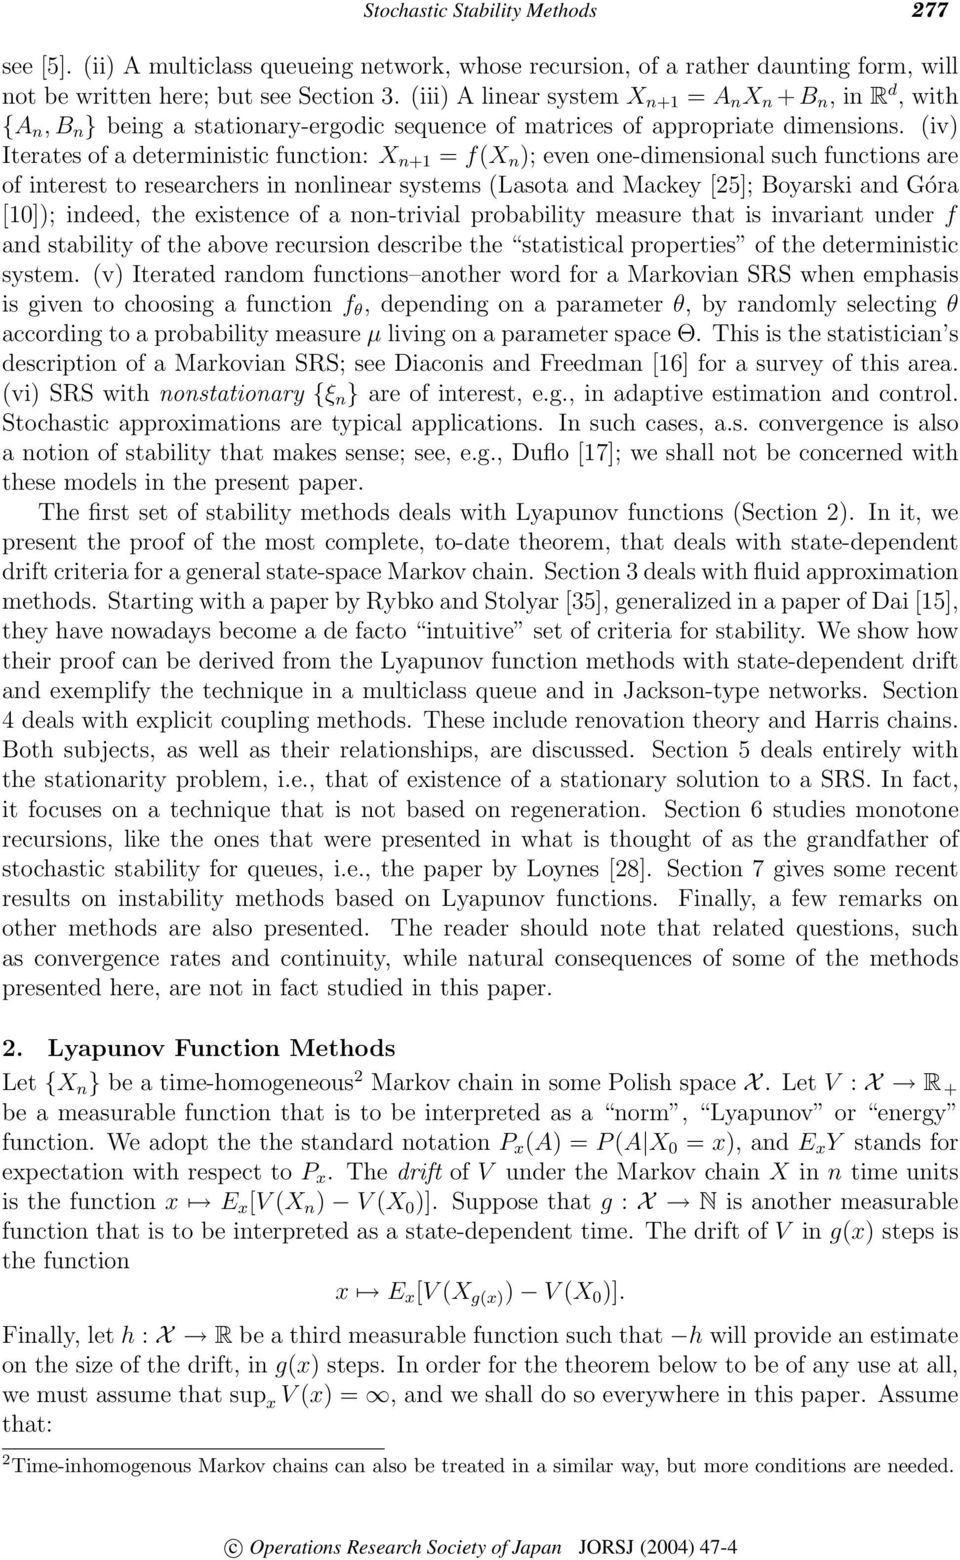 (iv) Iterates of a deterministic function: X n+1 = f(x n ); even one-dimensional such functions are of interest to researchers in nonlinear systems (Lasota and Mackey [25]; Boyarski and Góra [10]);